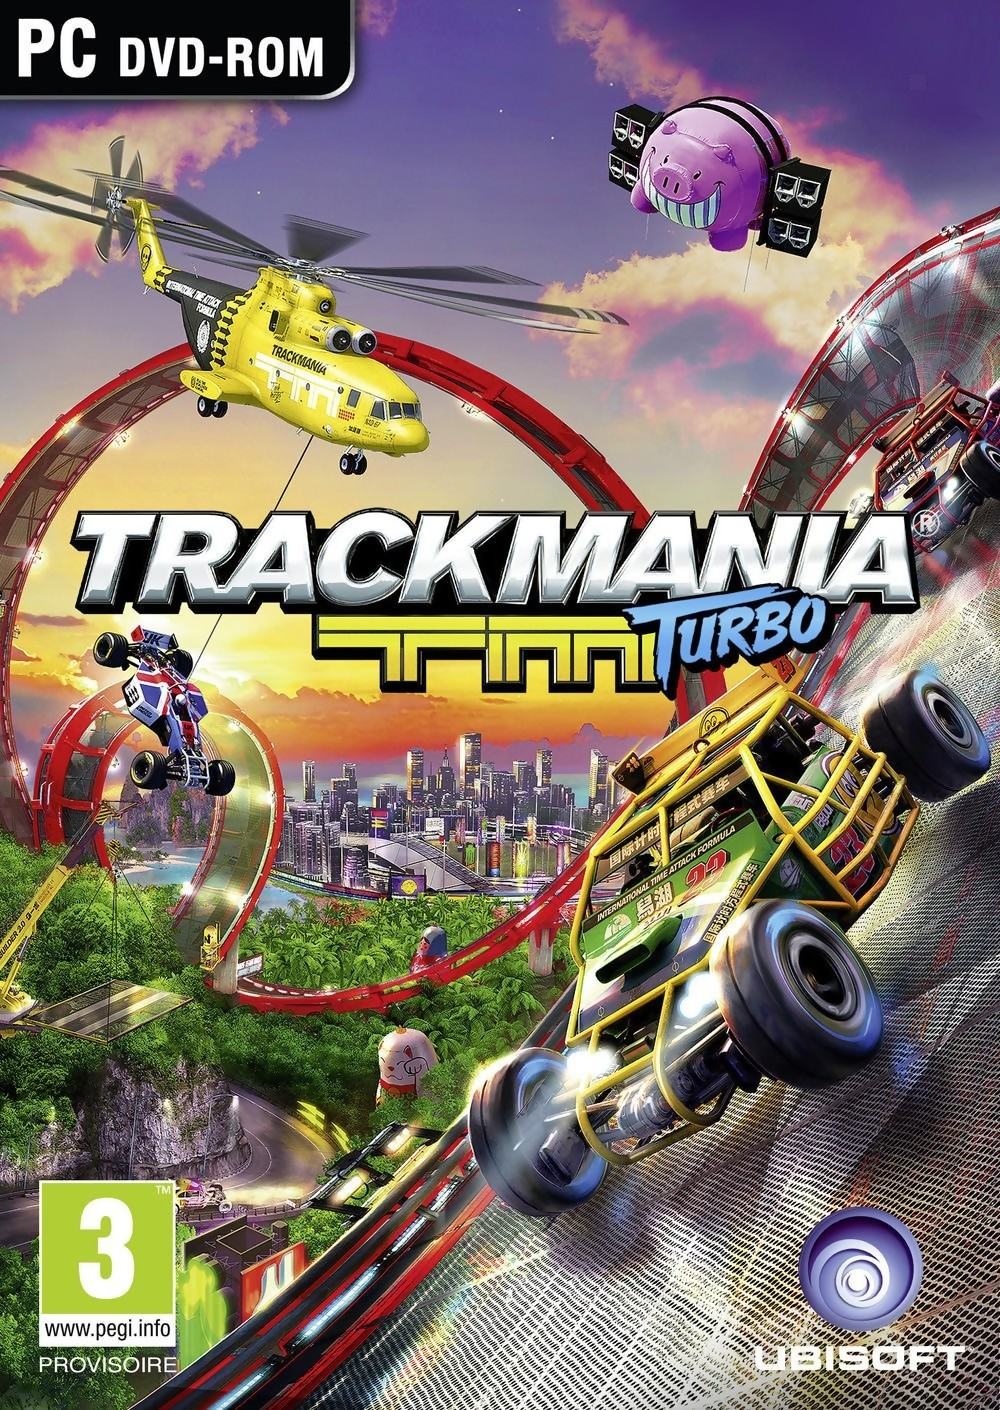 trackmania turbo en multi 2 joueurs pourront piloter une seule voiture. Black Bedroom Furniture Sets. Home Design Ideas